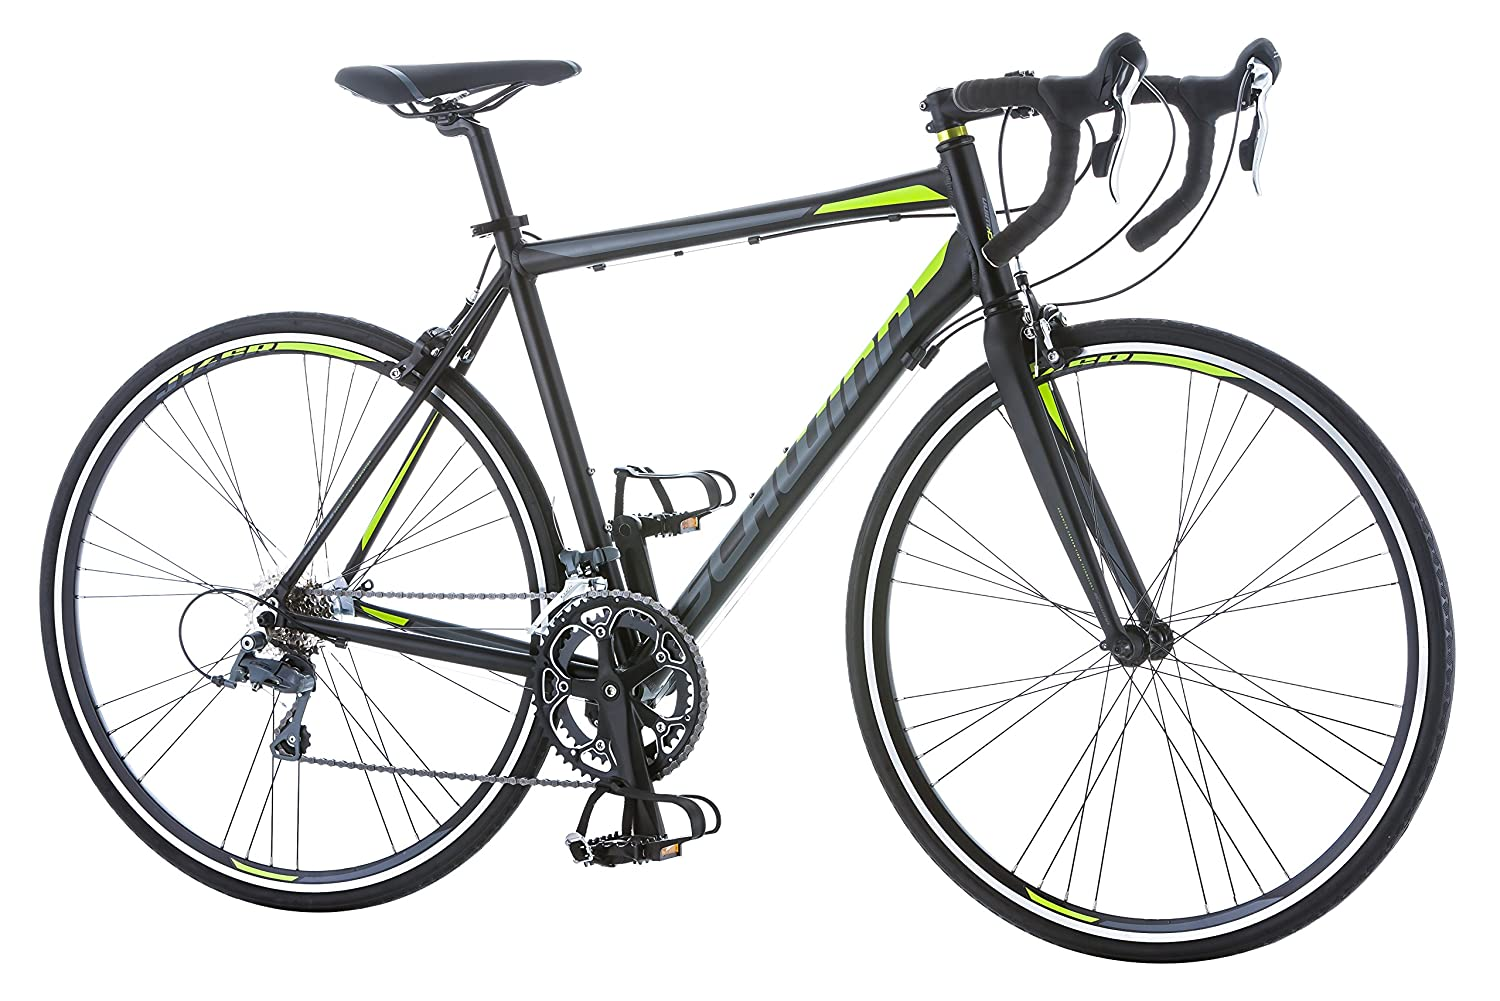 The Best Road Bikes Under $500 2